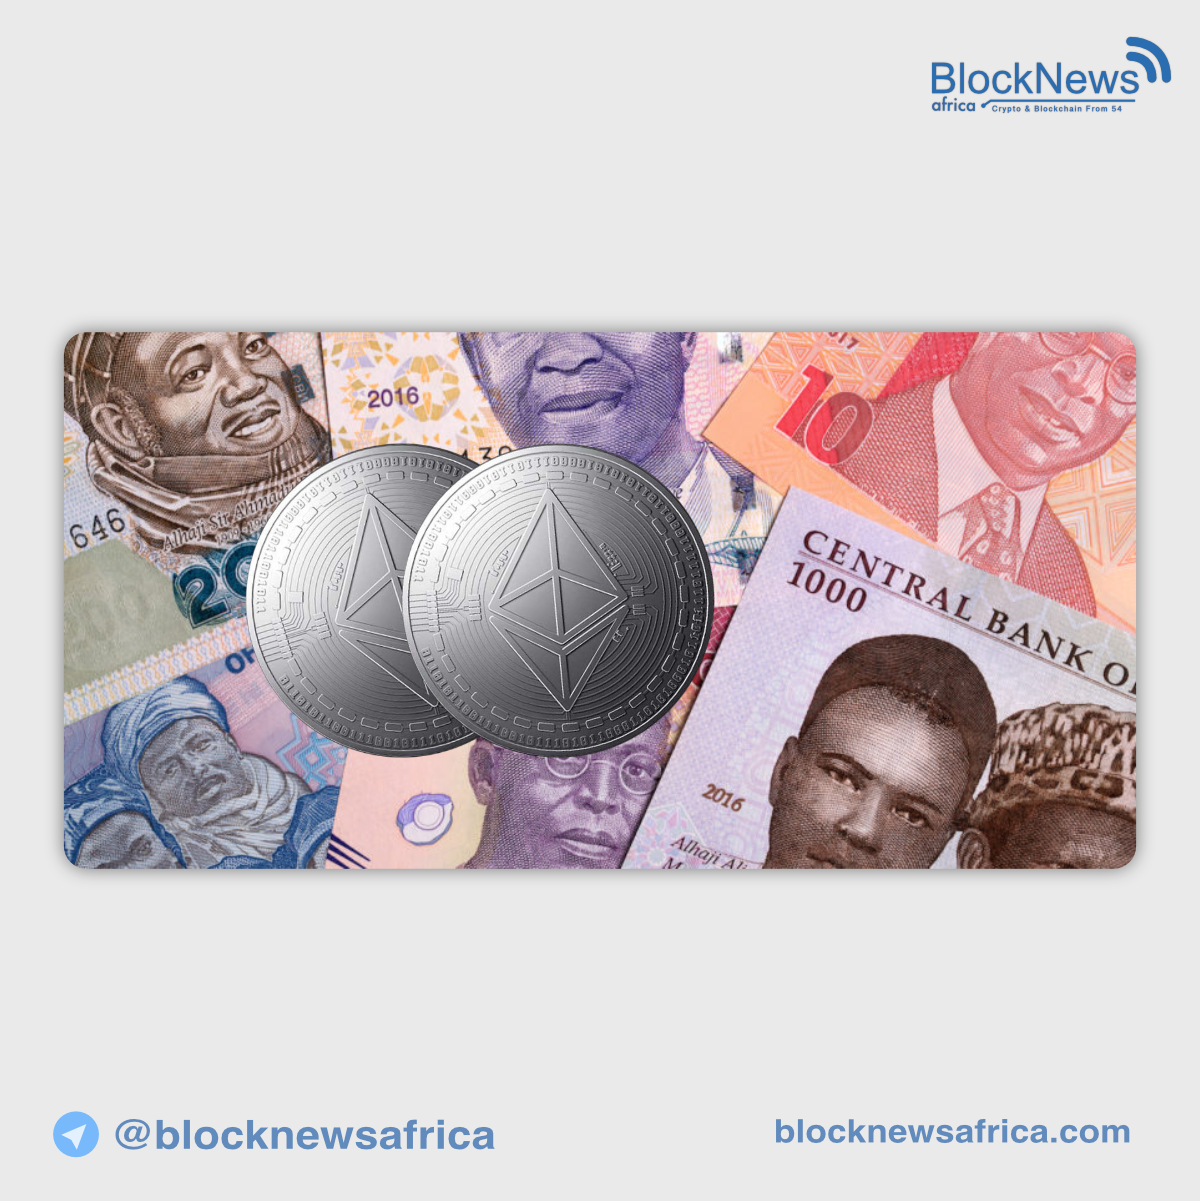 how to register bitcoin account in south africa 2020